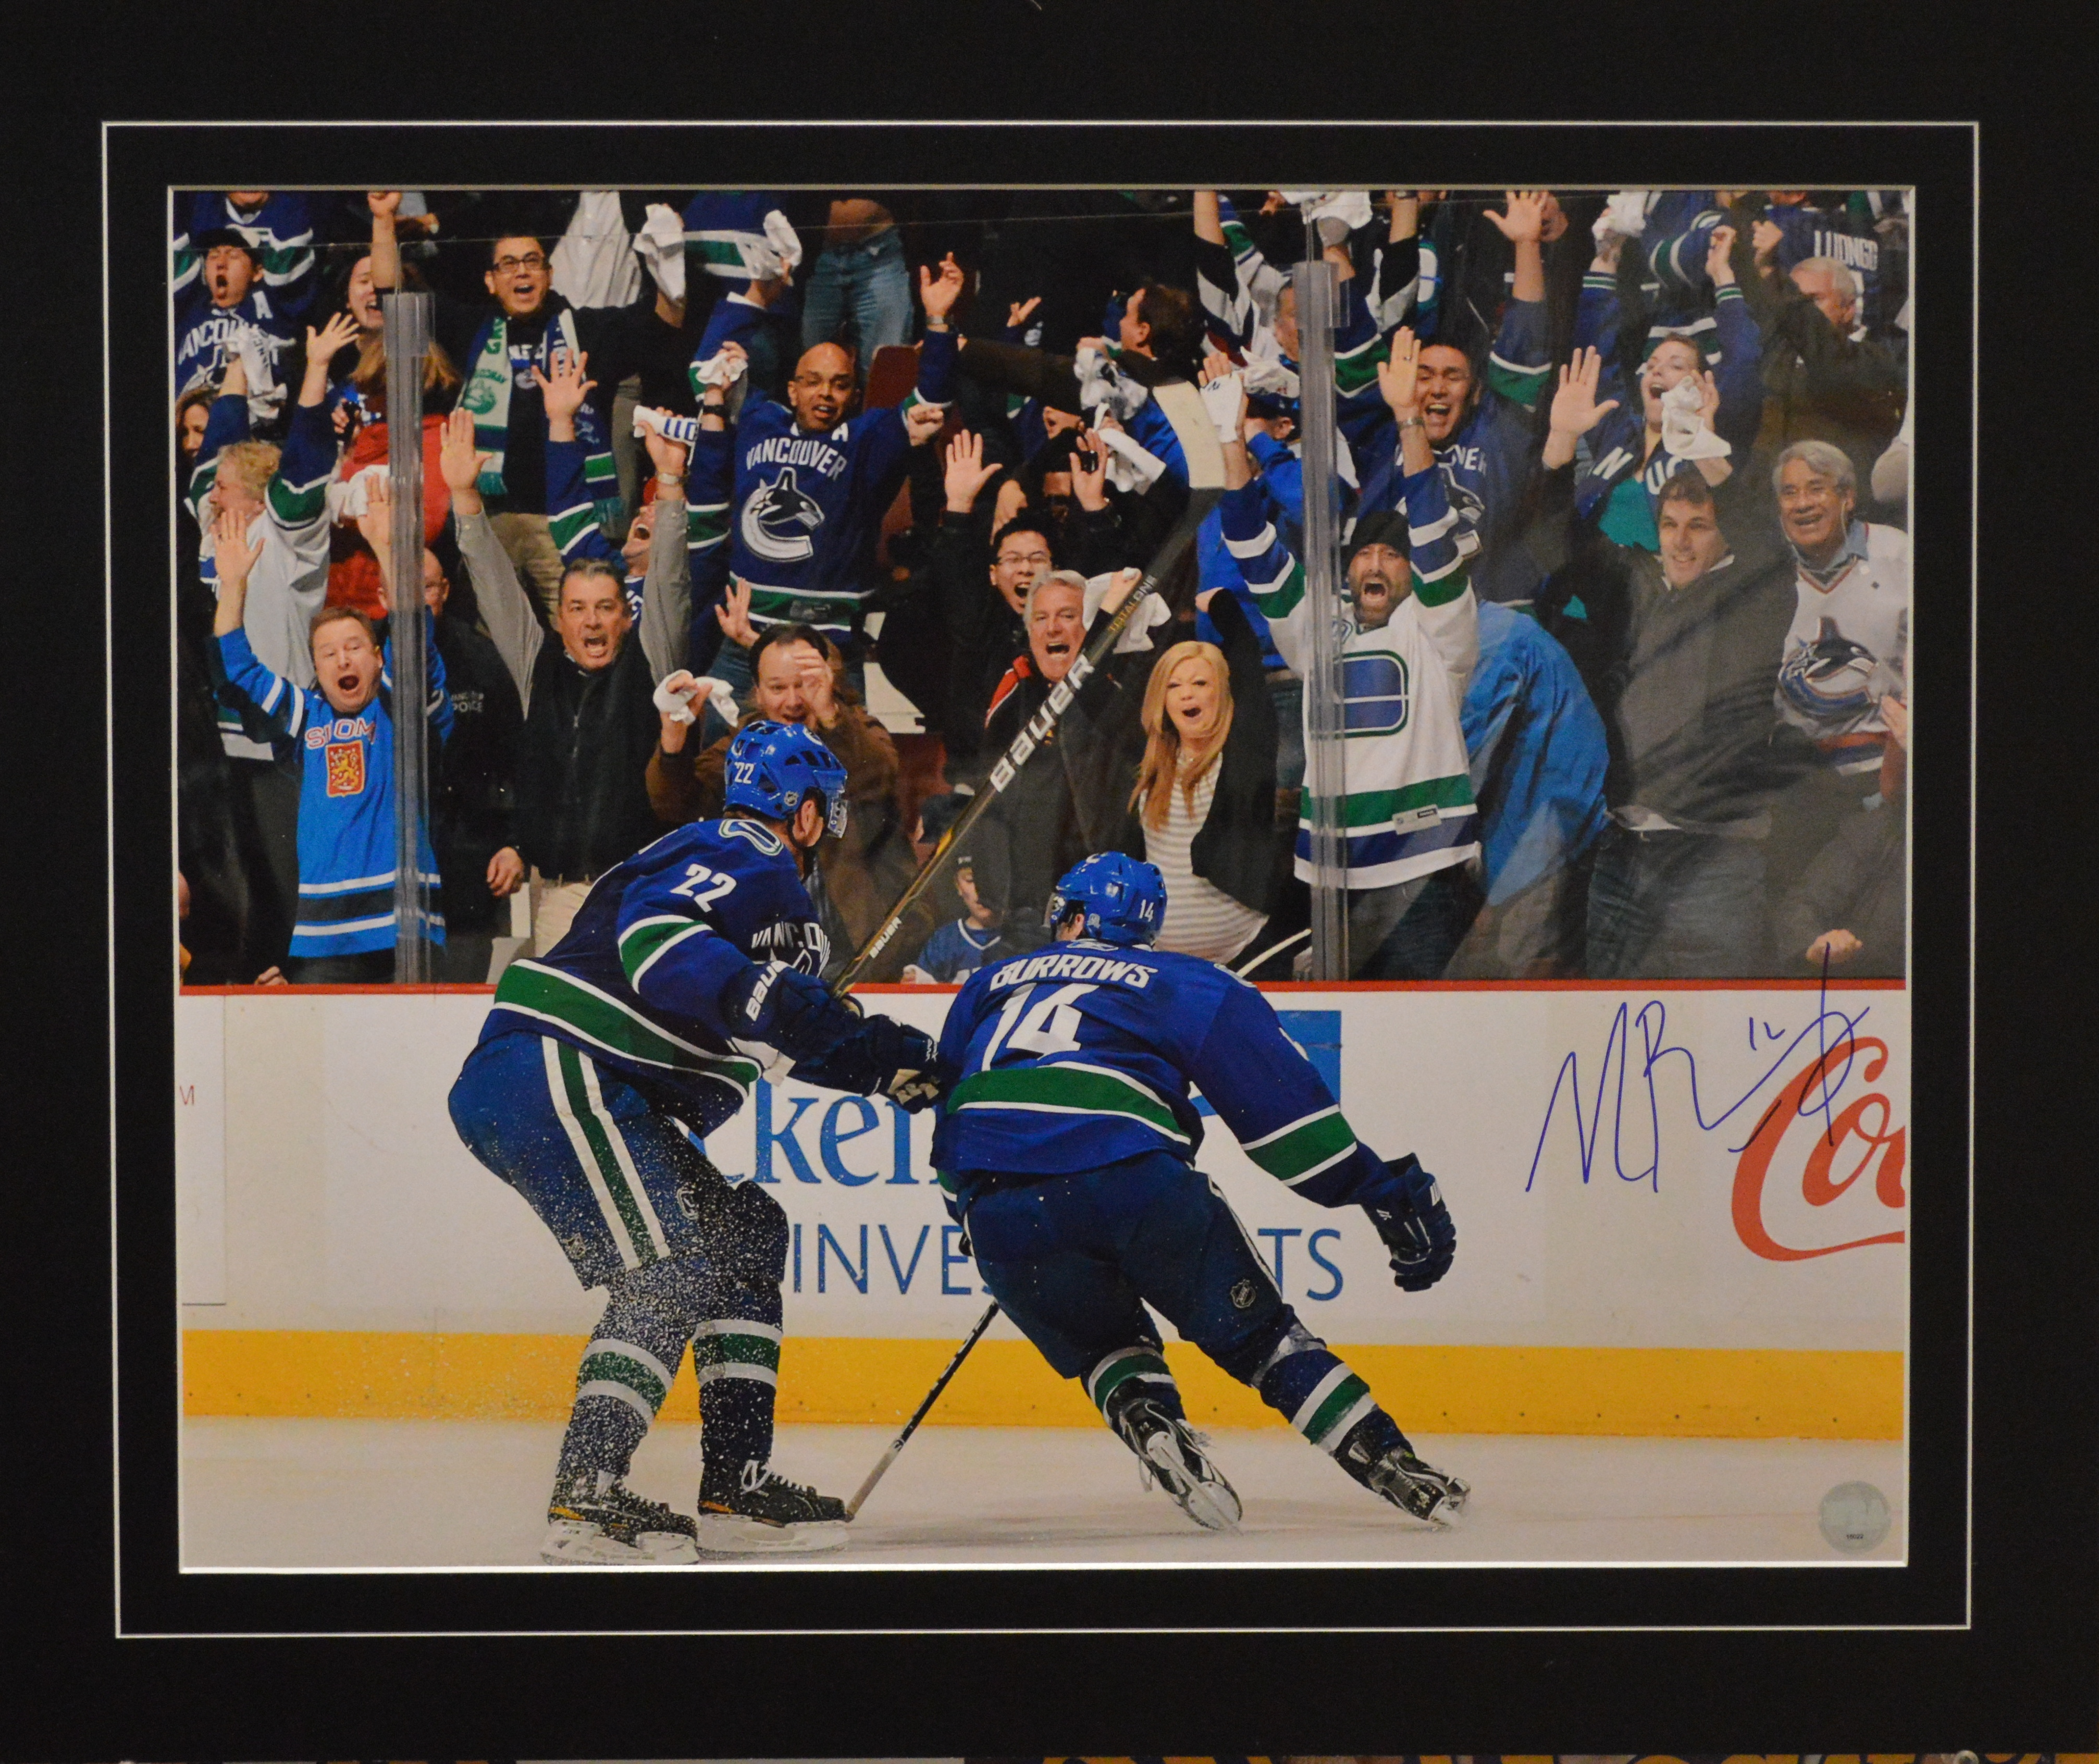 05729a6030e ... Alex Burrows Autographed Vancouver Canucks 16 x 20 Photo.  West Coast Authentic NHL Canucks Alex Burrows Autographed Photo(2)